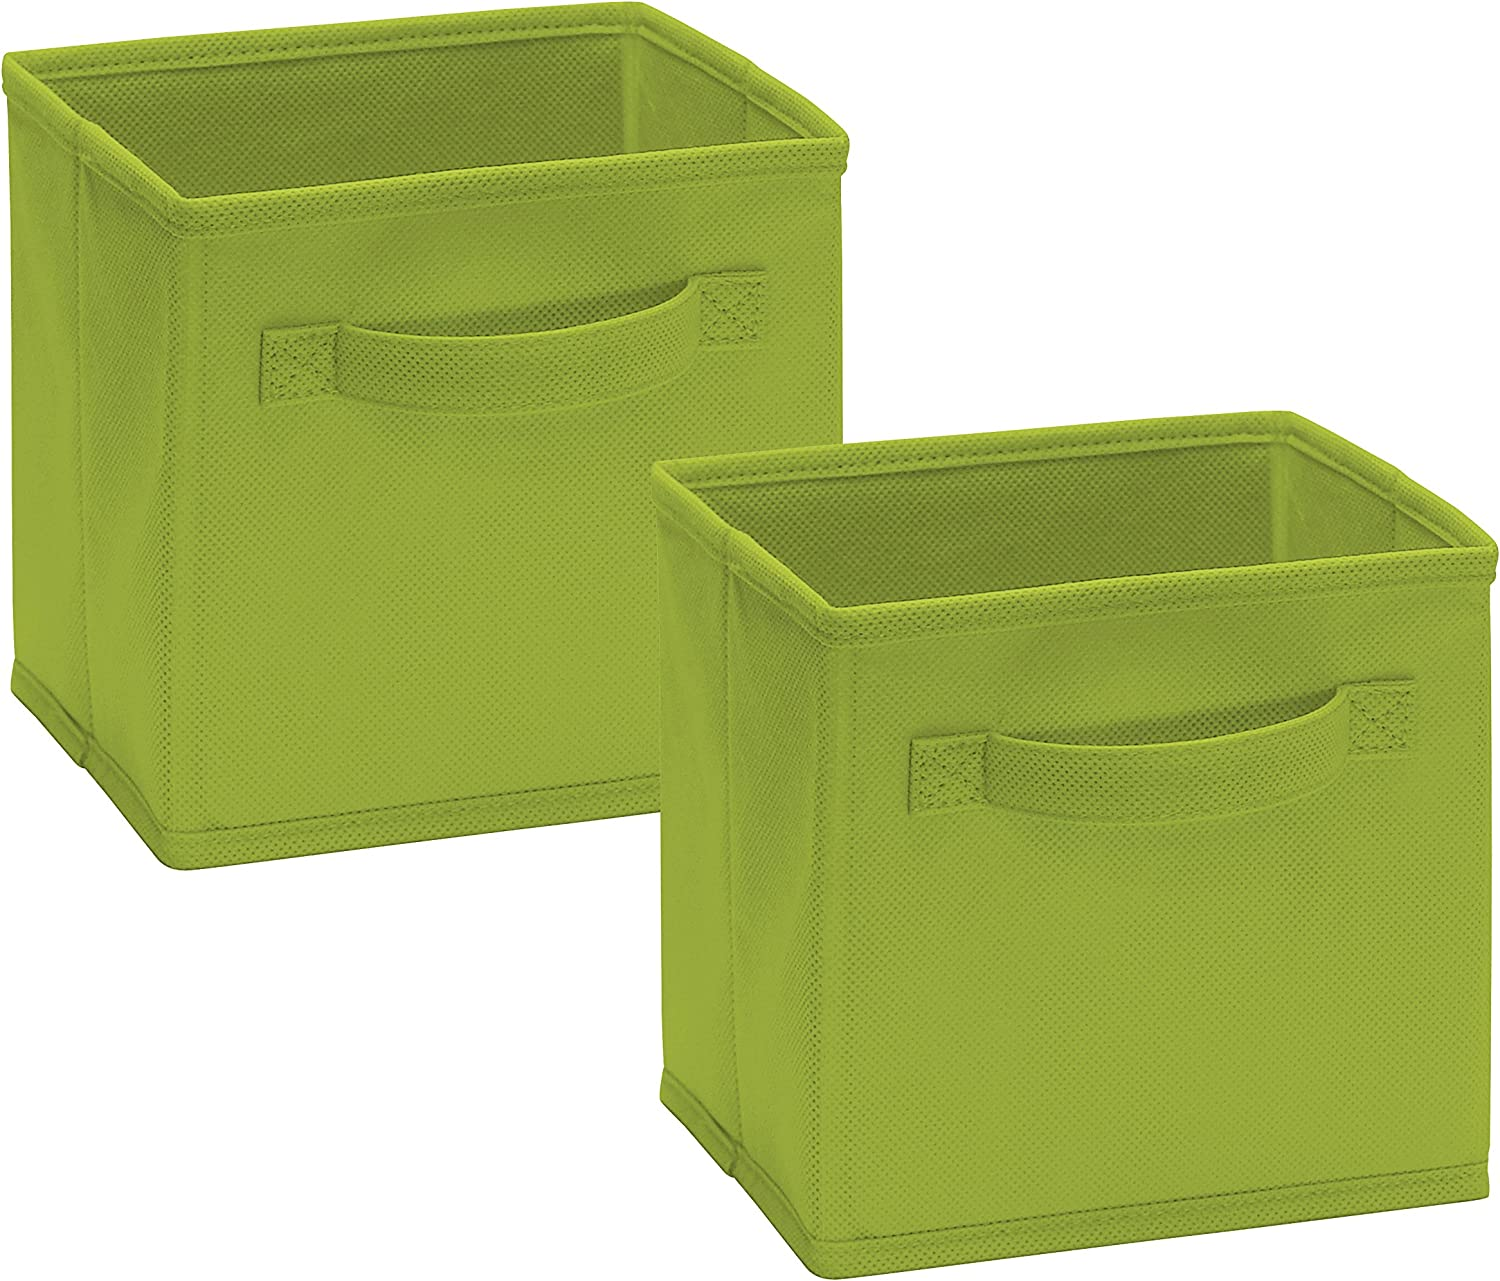 Closetmaid 1540 Cubeicals Mini Fabric Drawers, Spring Green, 2 Pack